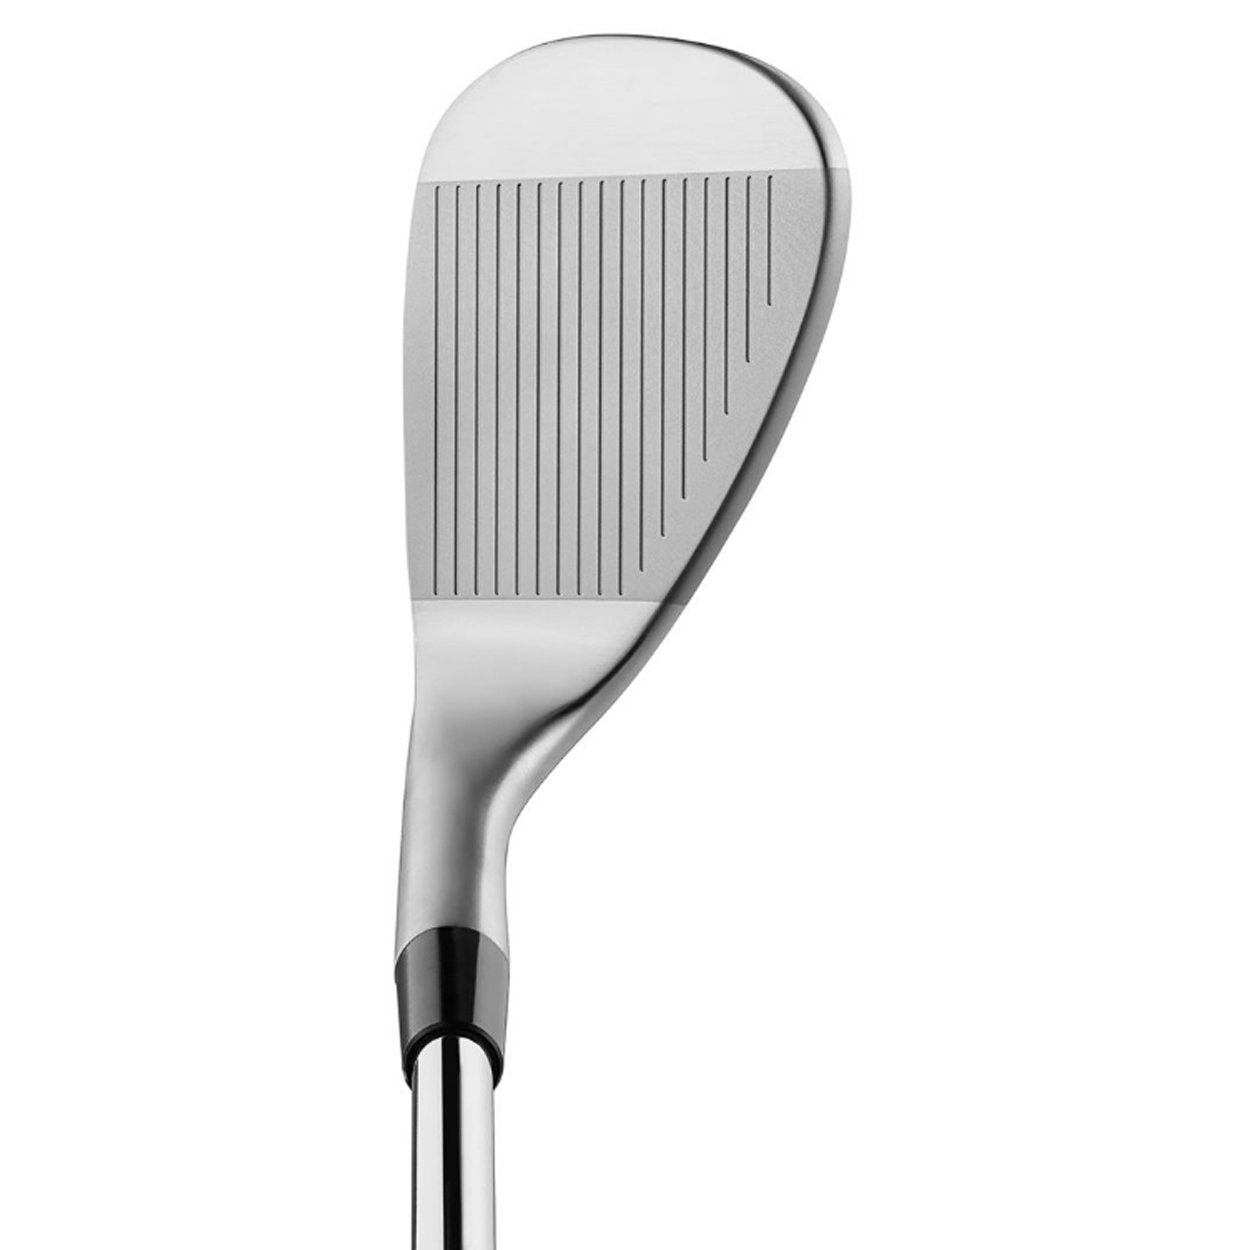 TaylorMade Golf Clubs ATV Grind Chrome Wedge, 52°/09°(GW) Steel Wedge Flex Shaft by TaylorMade (Image #3)